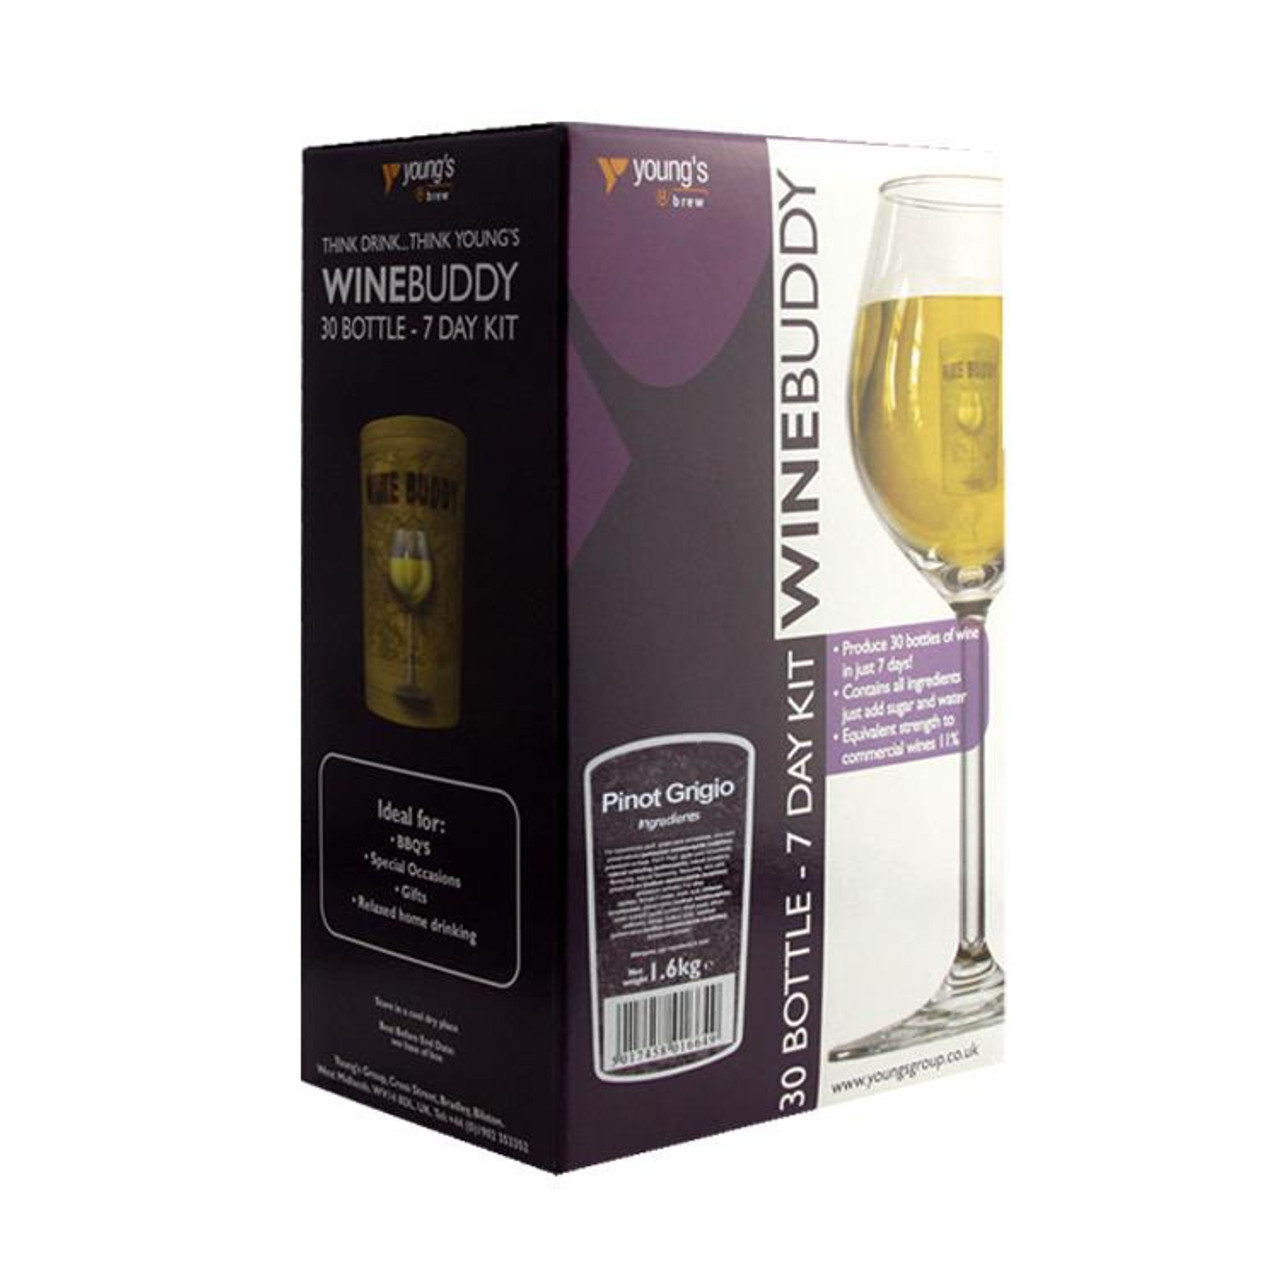 Youngs WineBuddy Pinot Grigio 30 Bottle Kit